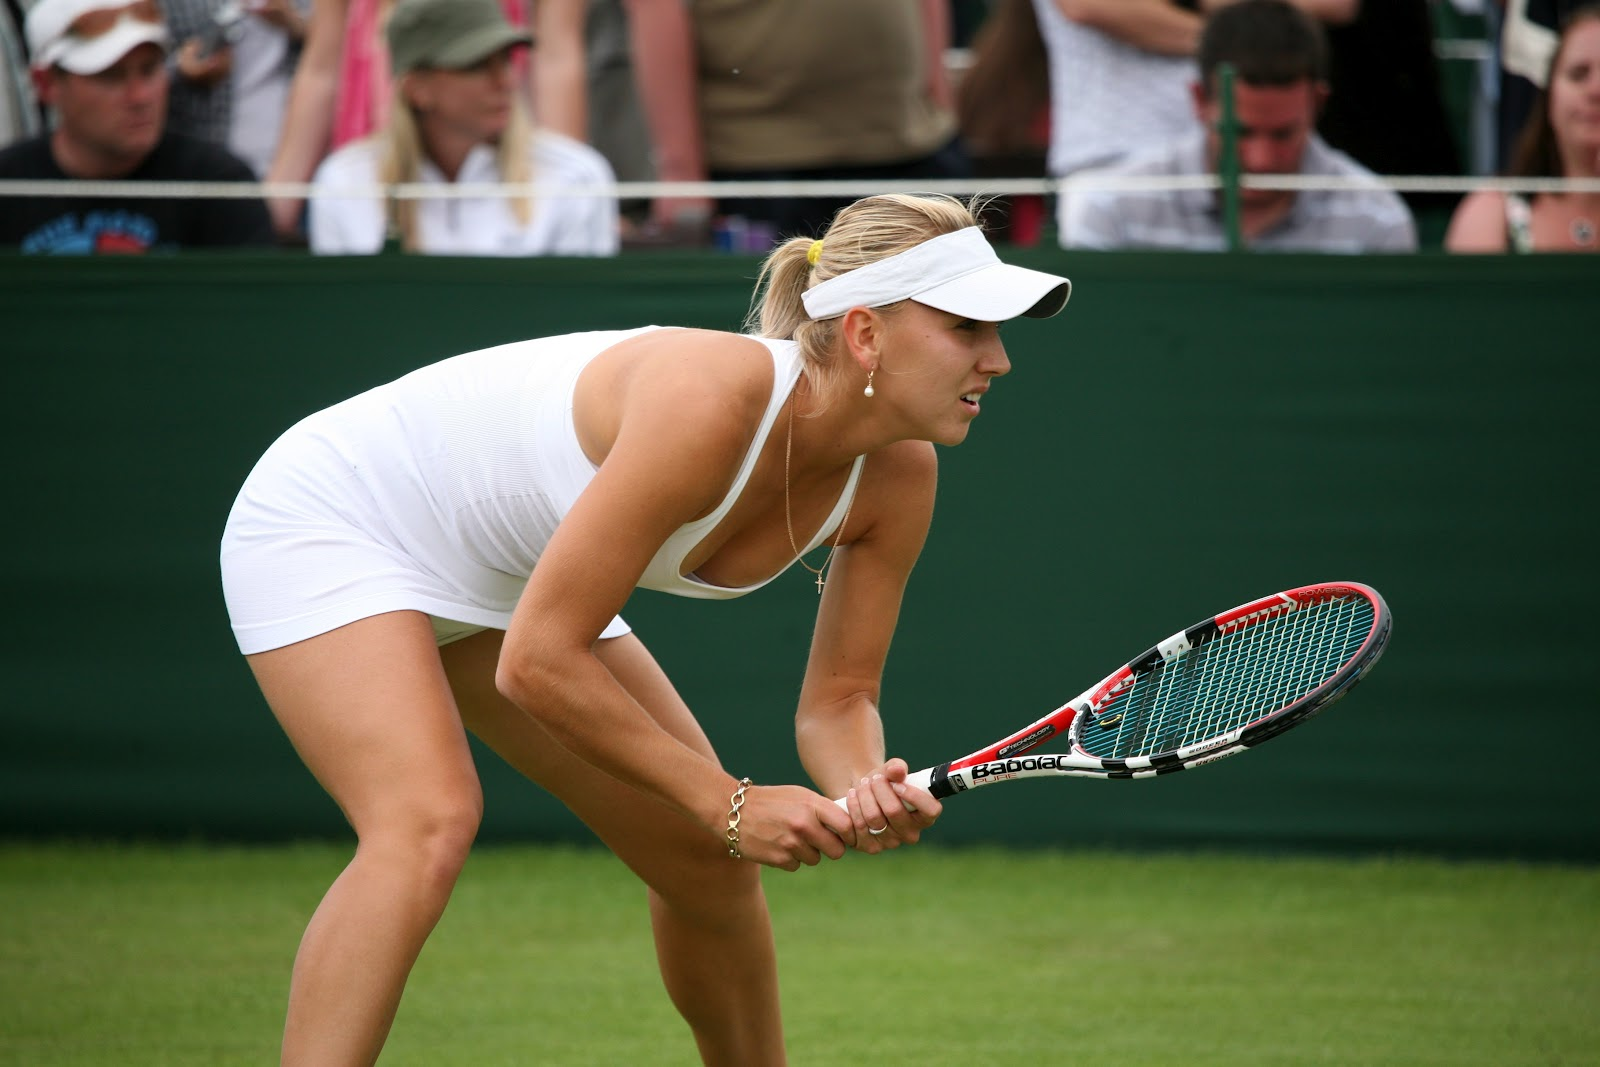 elena vesnina hot photos - photo #31